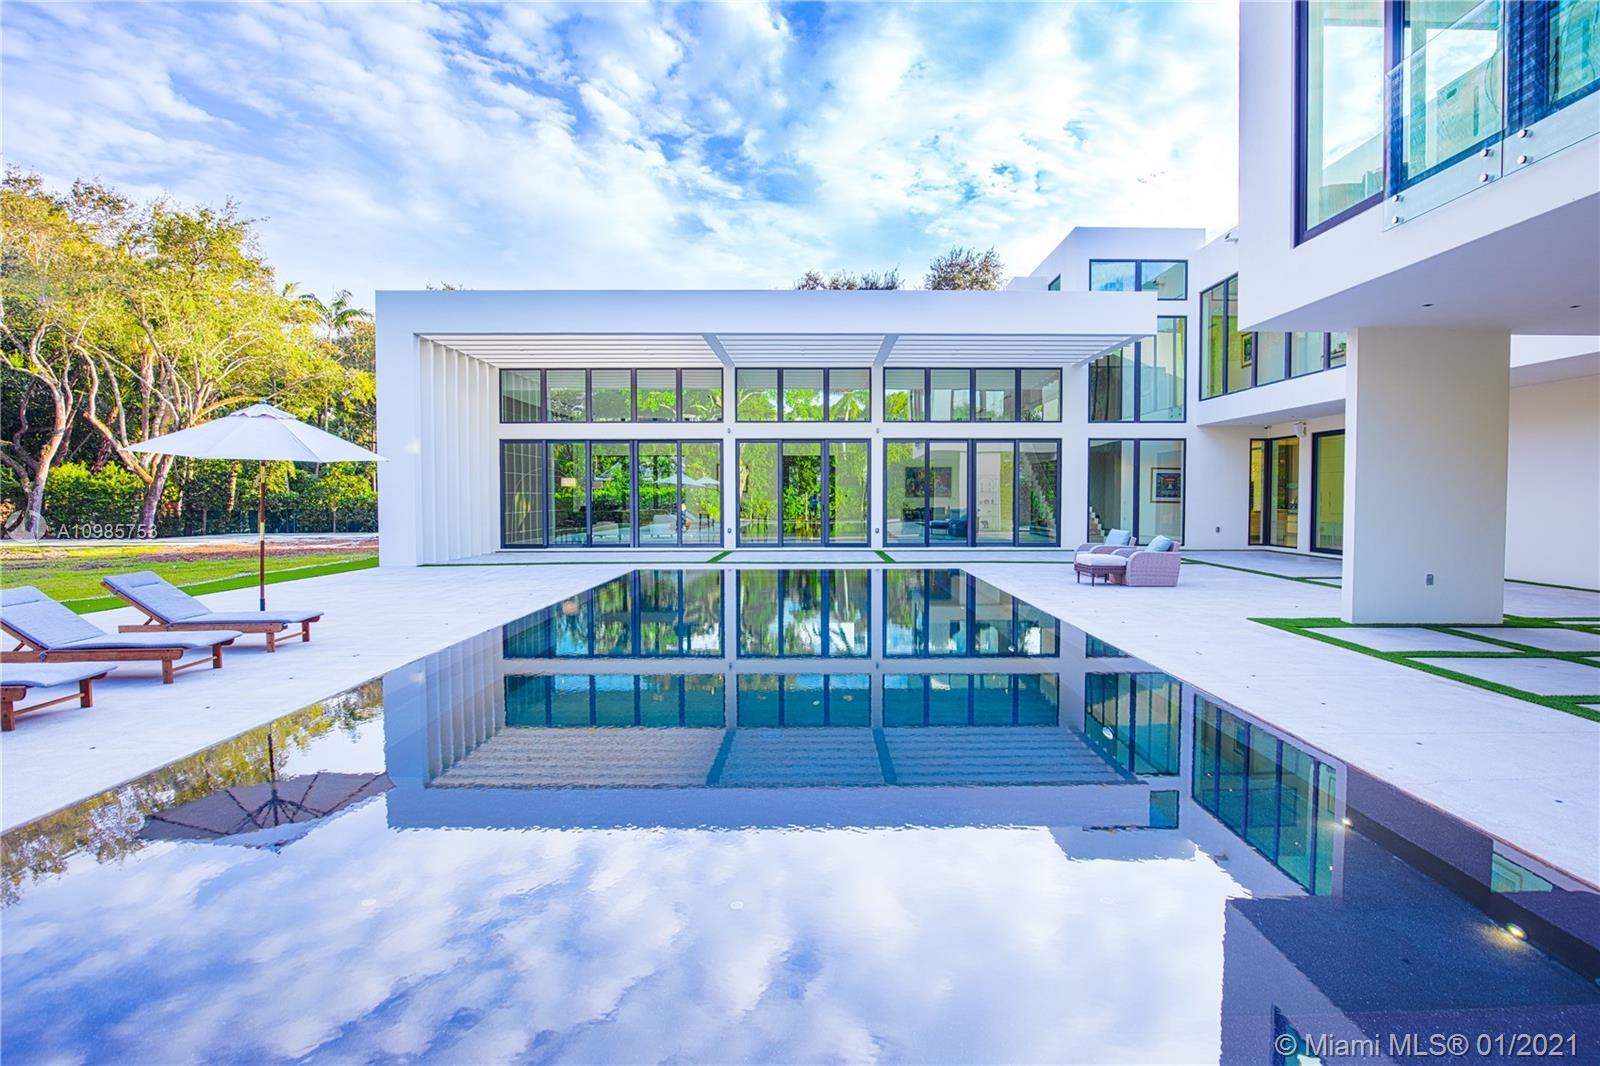 Stunning modern architectural masterpiece designed by Kobi Karp on rare 1.44 acres in Ponce Davis. Built in 2014, this 10,000 SF gated estate blends open concept interiors with sweeping landscape to provide spaces for grand entertaining and intimate family relaxation. You are welcomed into a magnificent great room with soaring 16-foot ceilings and a wall of glass opening on to the breathtaking negative-edge heated pool/expansive terrace. The home features 7 bedrooms including a sumptuous 1,500 SF master suite, 7.5 baths, Mia Cucina kitchen with SubZero/Wolf/Miele appliances, 264-bottle wine cooler, guest house, rooftop terrace, squash court/gym, home theatre, 3-car garage, Lutron/Sonos/URC smart home systems, whole-home generator. An extraordinary achievement of sophistication and privacy.